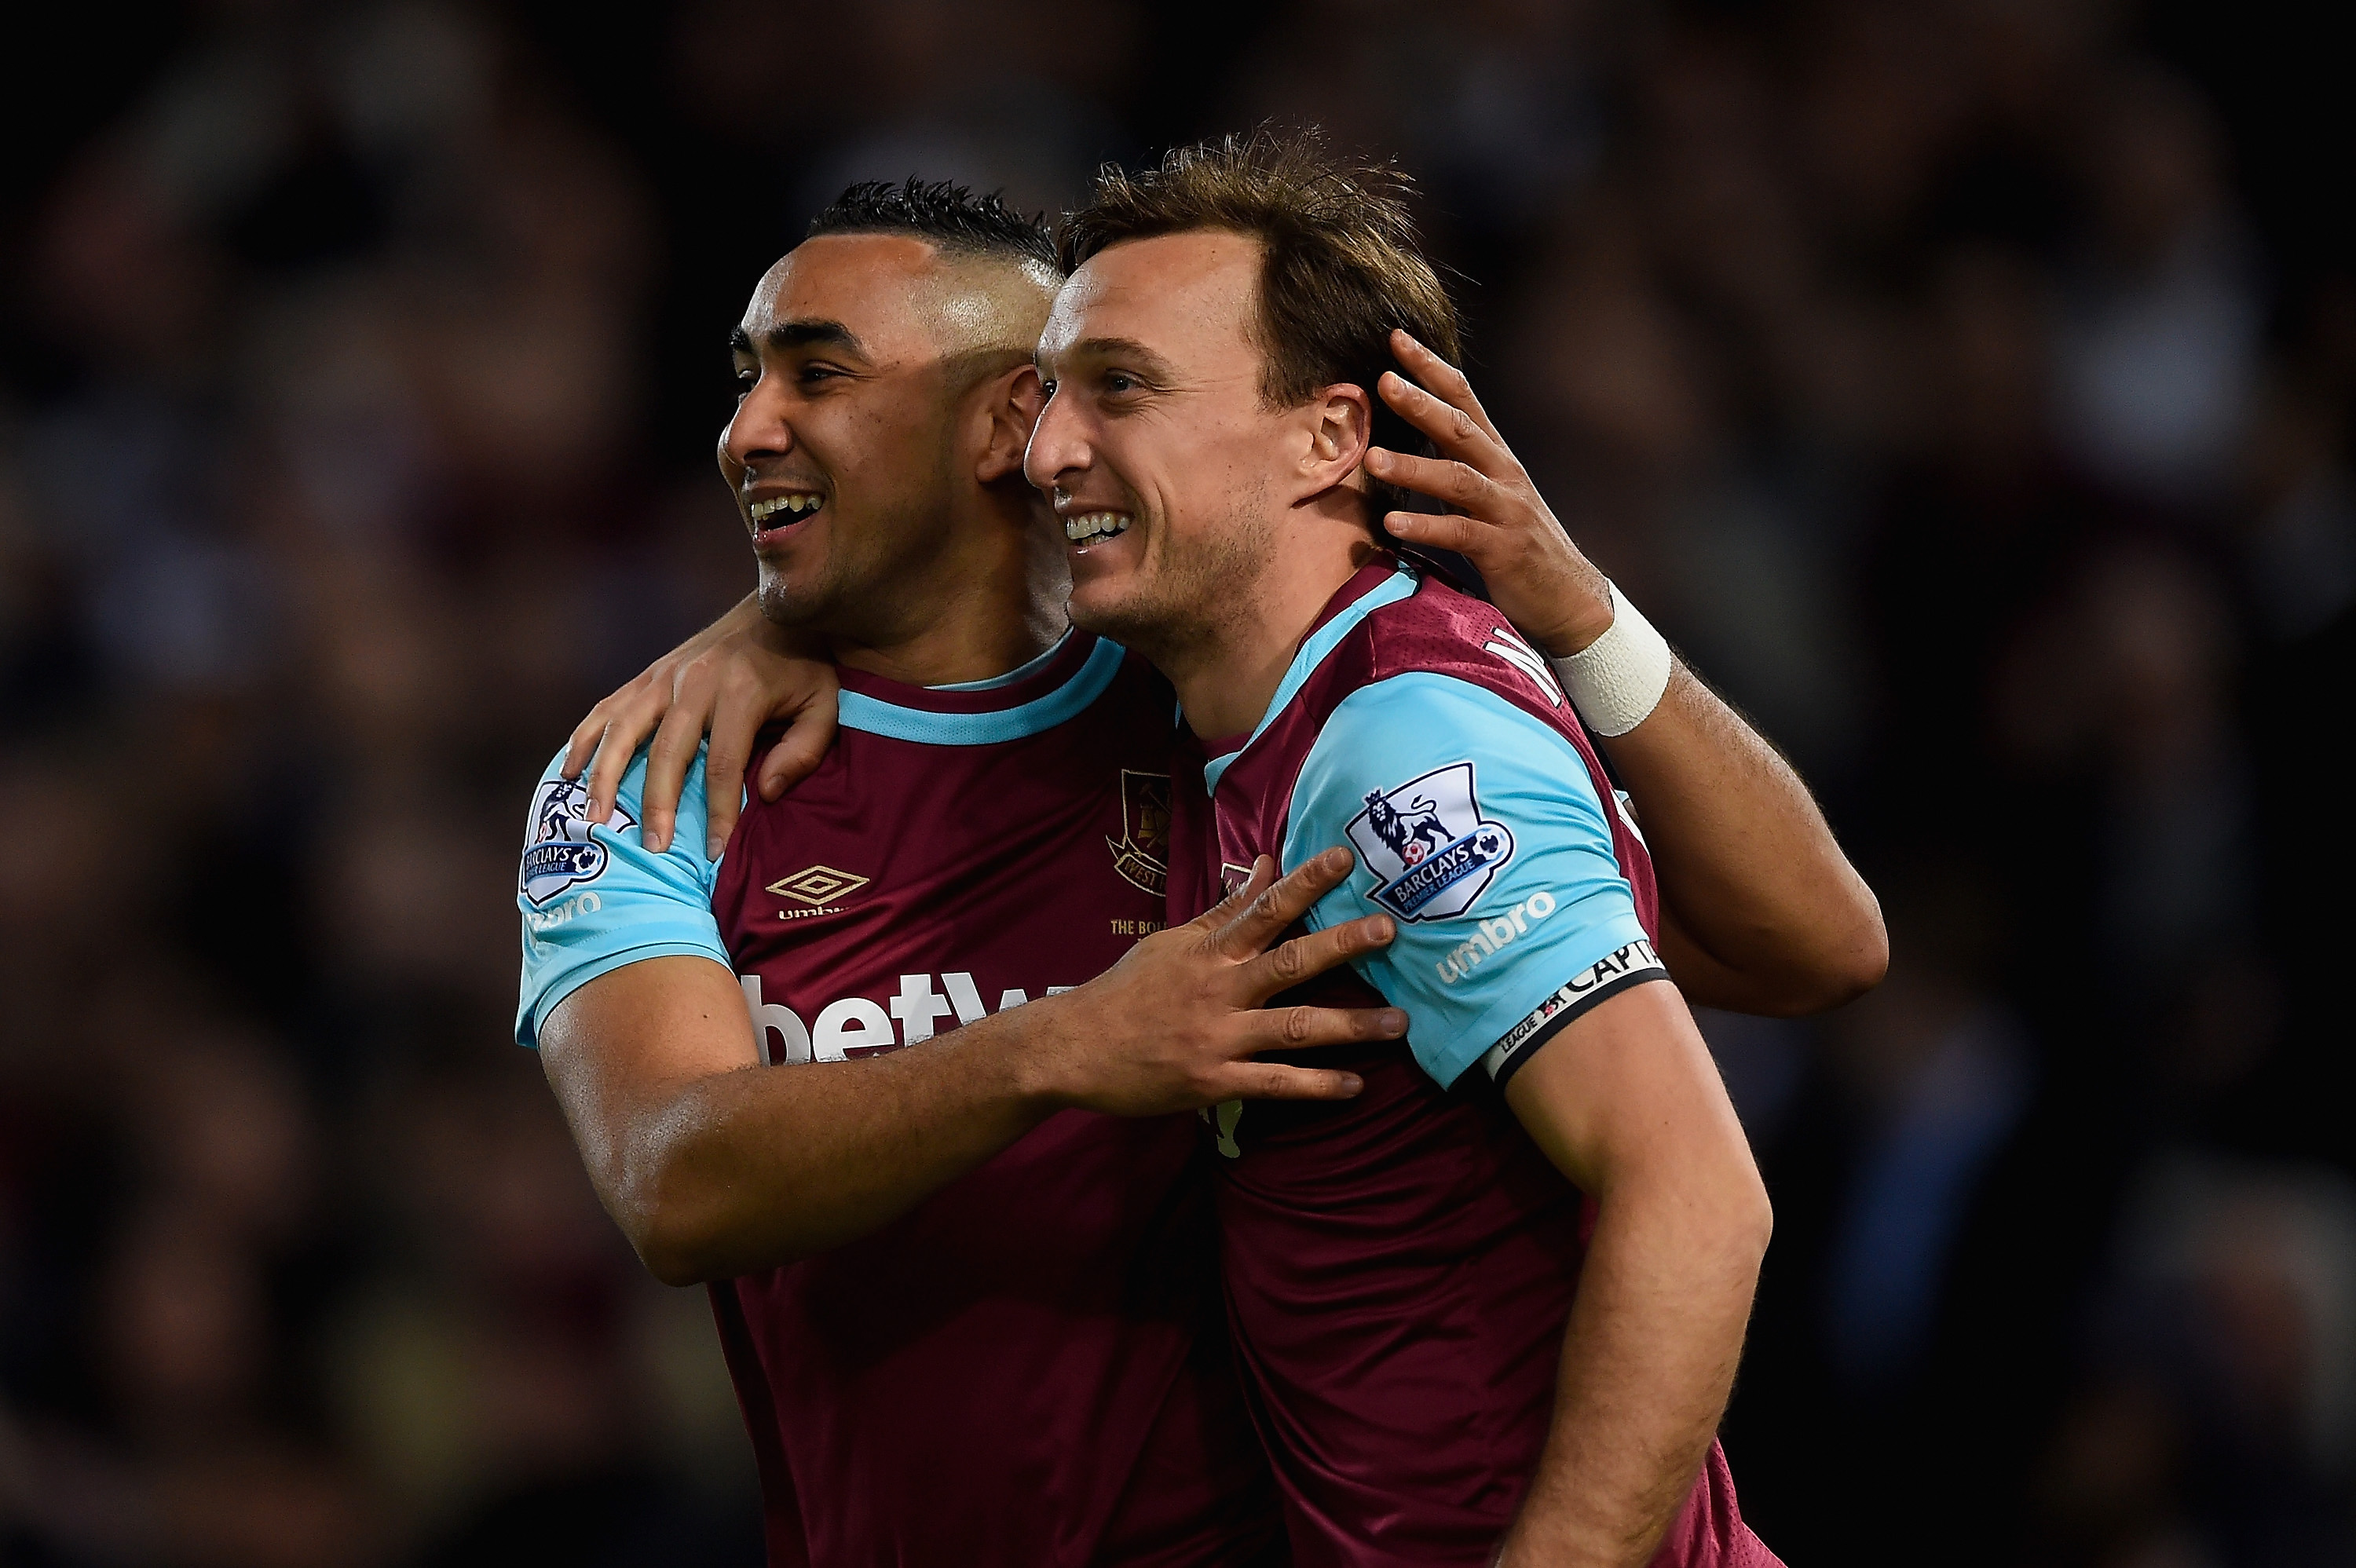 West Ham captain Mark Noble: 'I haven't spoken to Dimitri Payet in weeks'